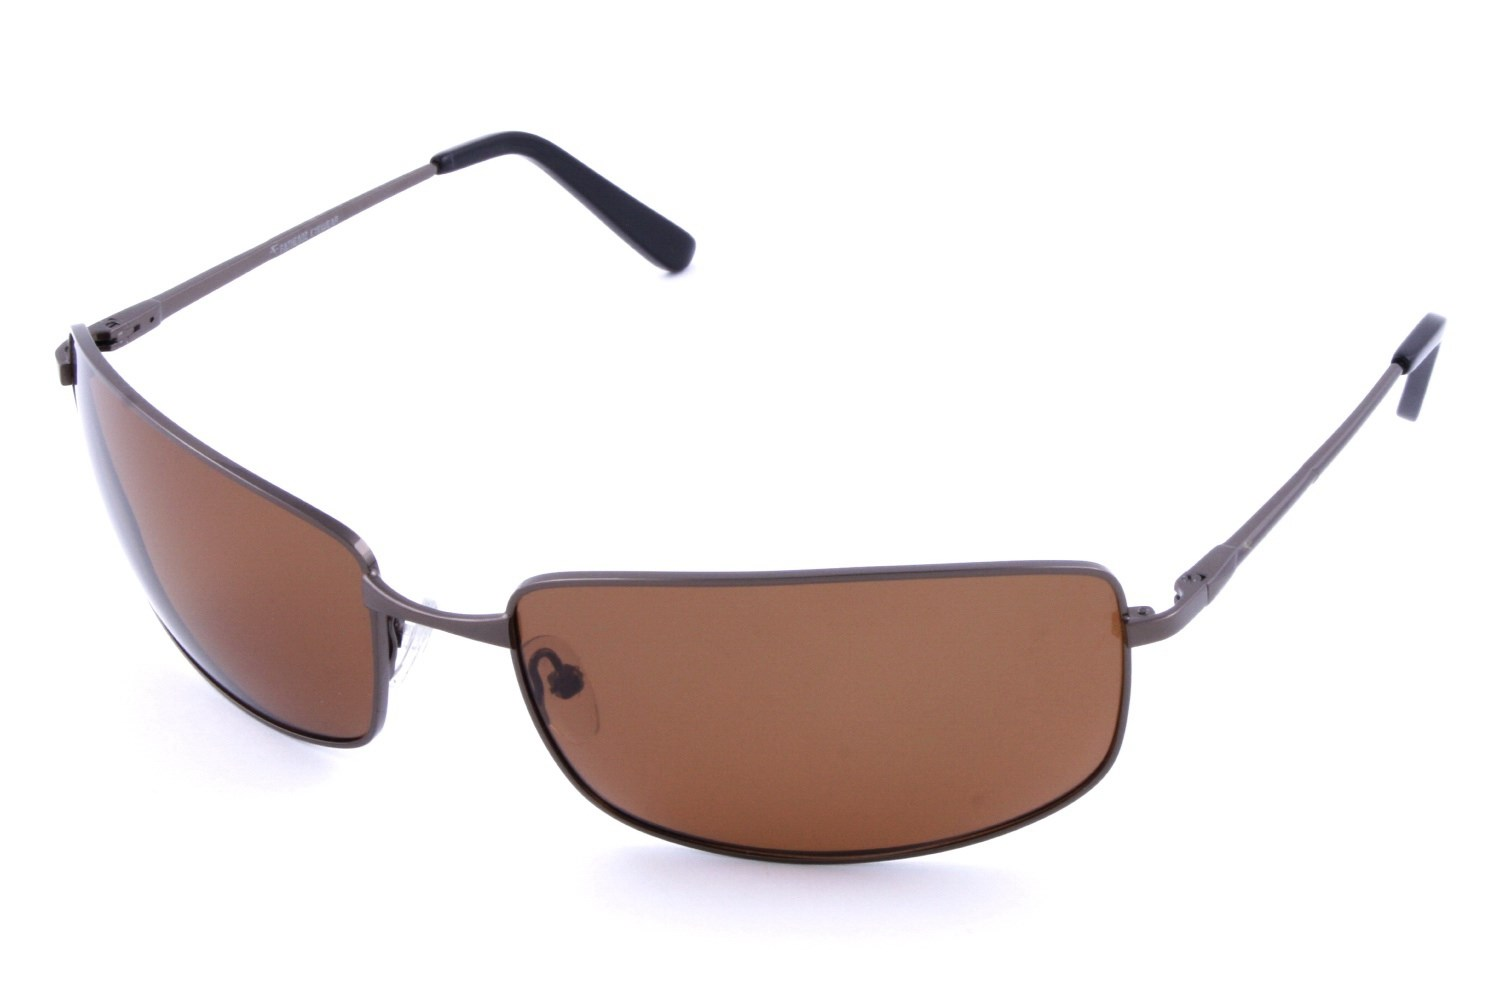 Fatheadz Domino XL 71 Polarized